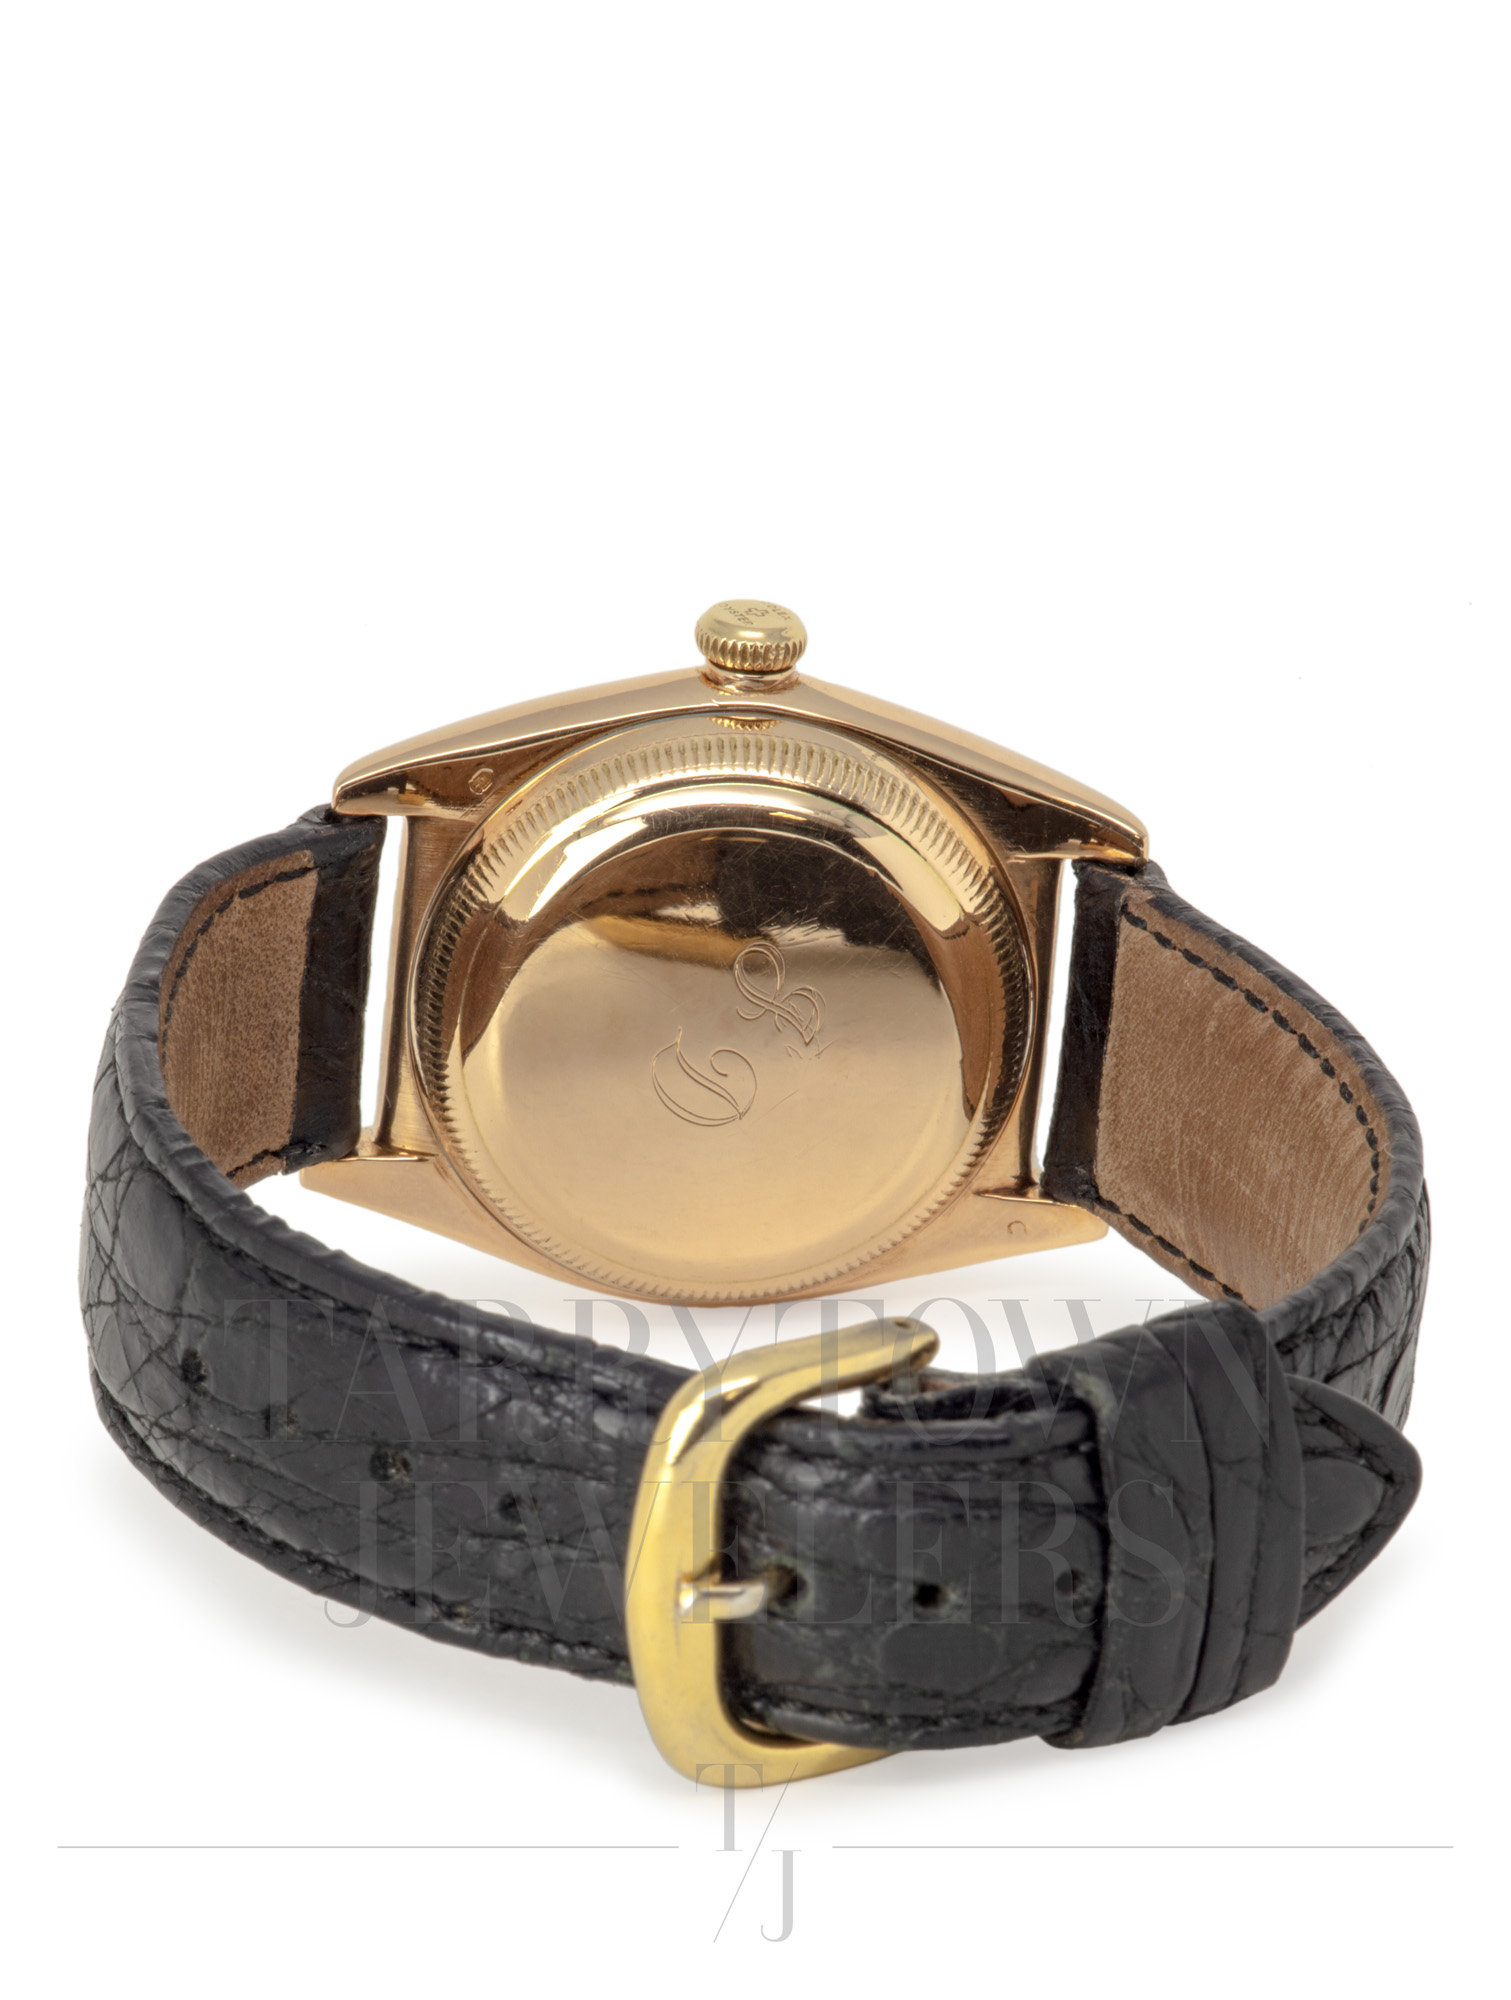 Oyster Perpetual Bubble back